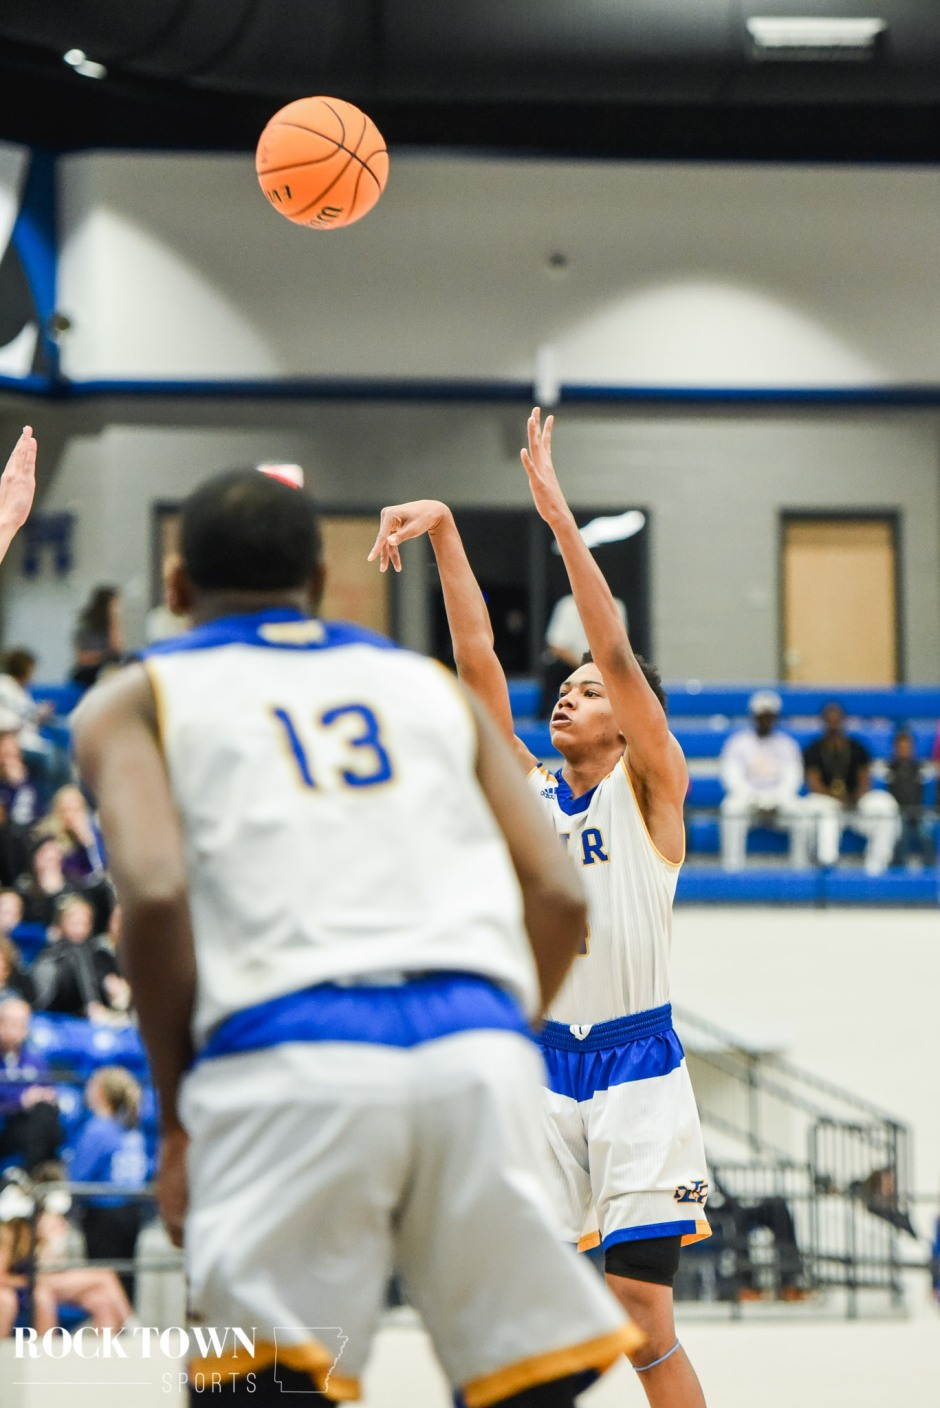 NLR_conway_bball_2020(i)-23